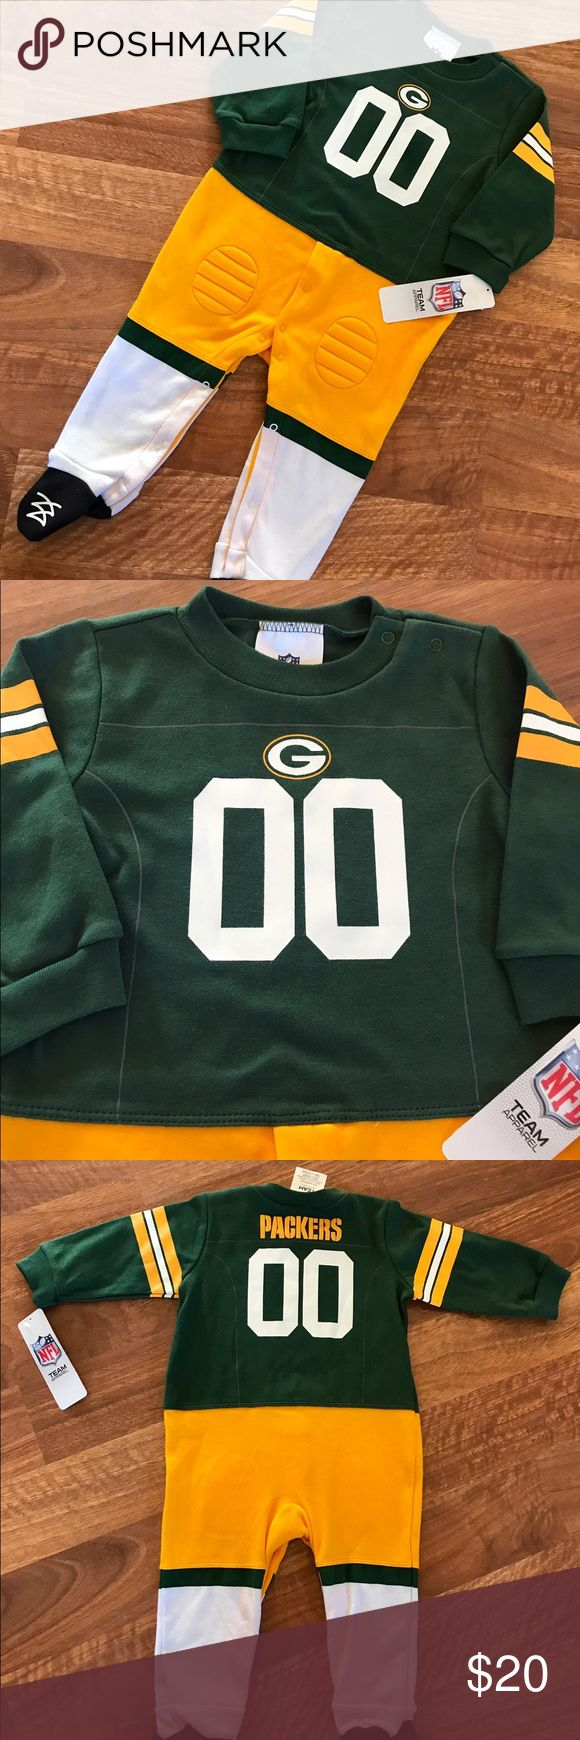 {NFL} Baby Sleeper NWOT Get your little Cheesehead ready for the big game in this adorable little one-piece Packers sleeper! Size 6-9 months. All of my items come from my smoke-free home. Bundle and save!!! NFL One Pieces